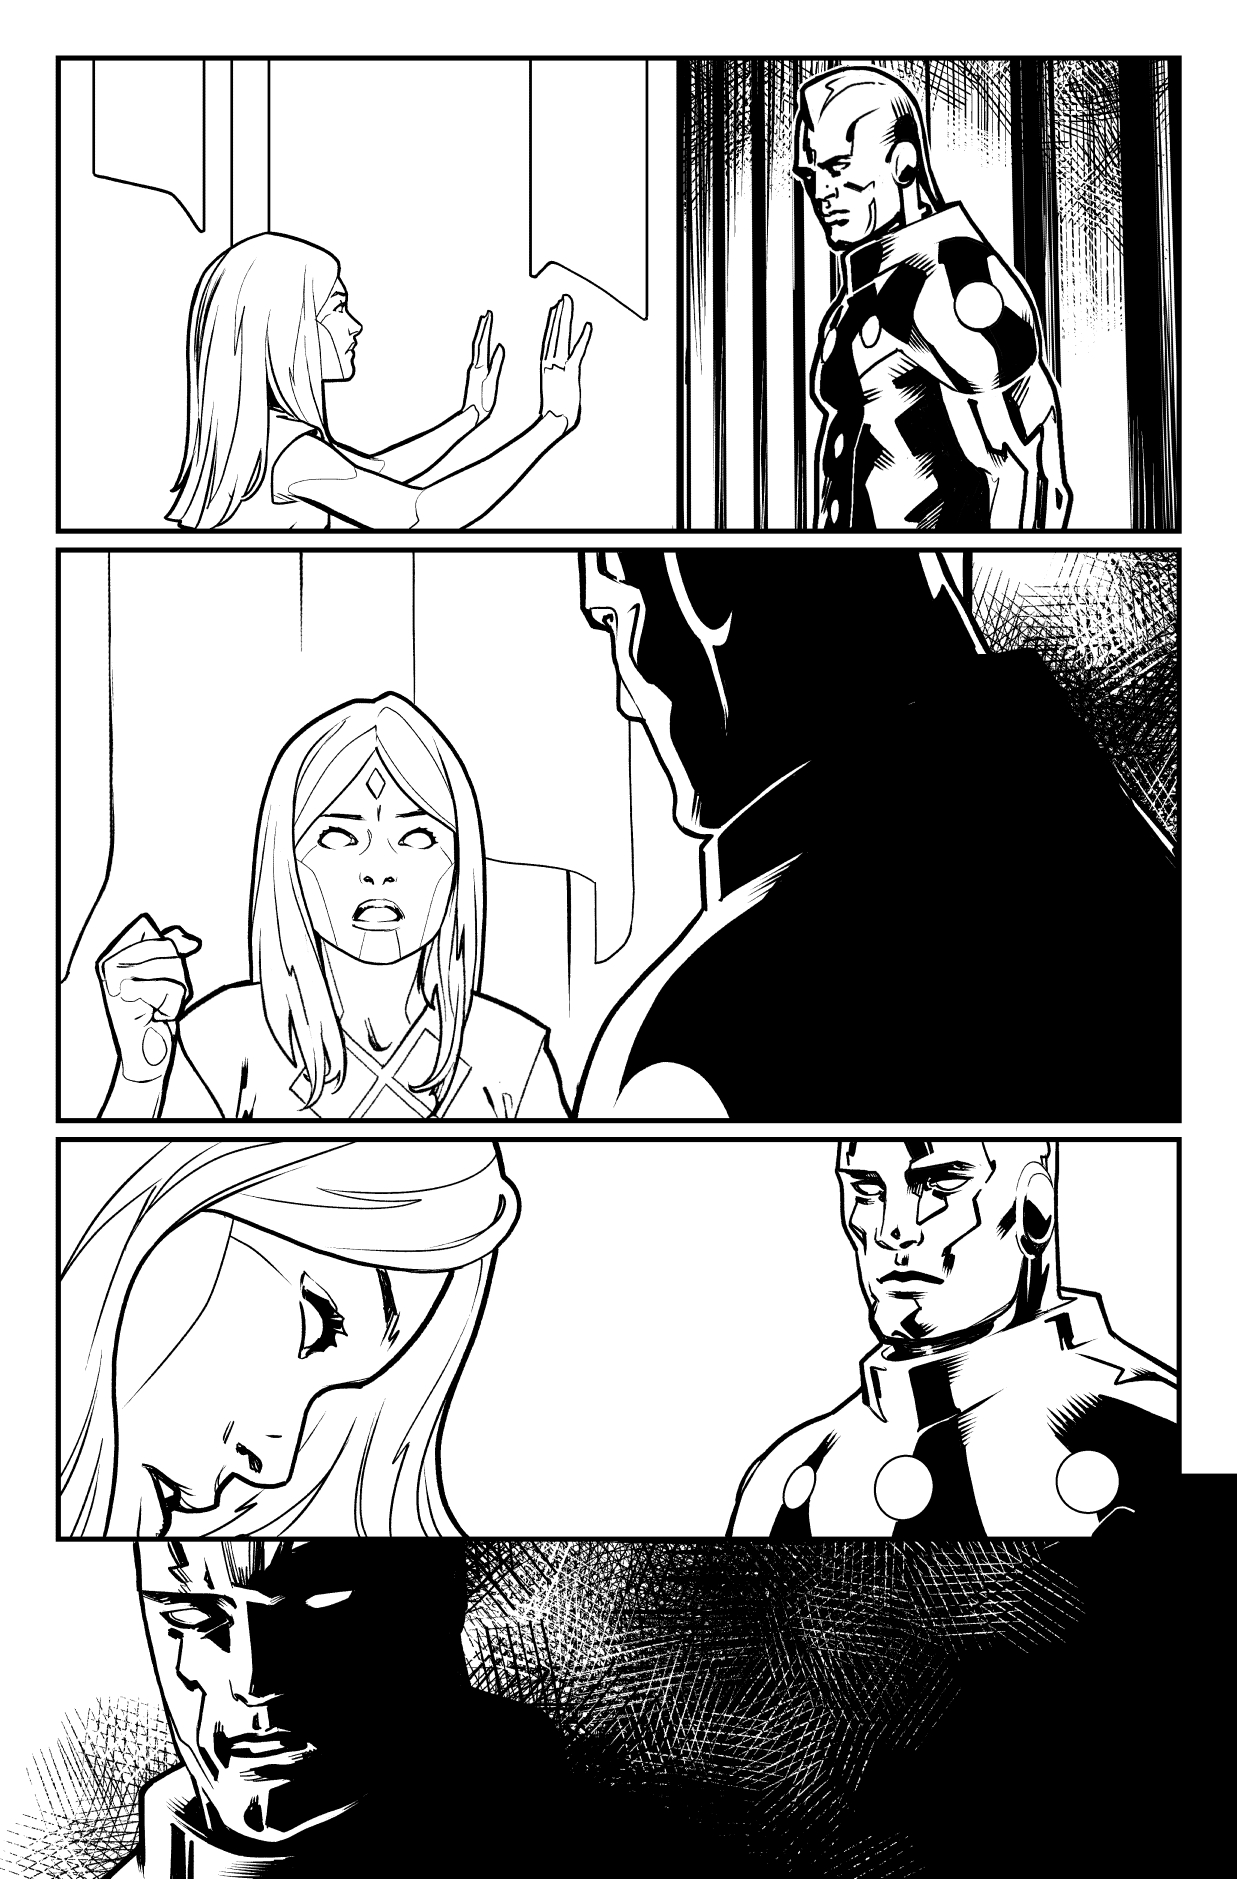 Avengers #673, page 14